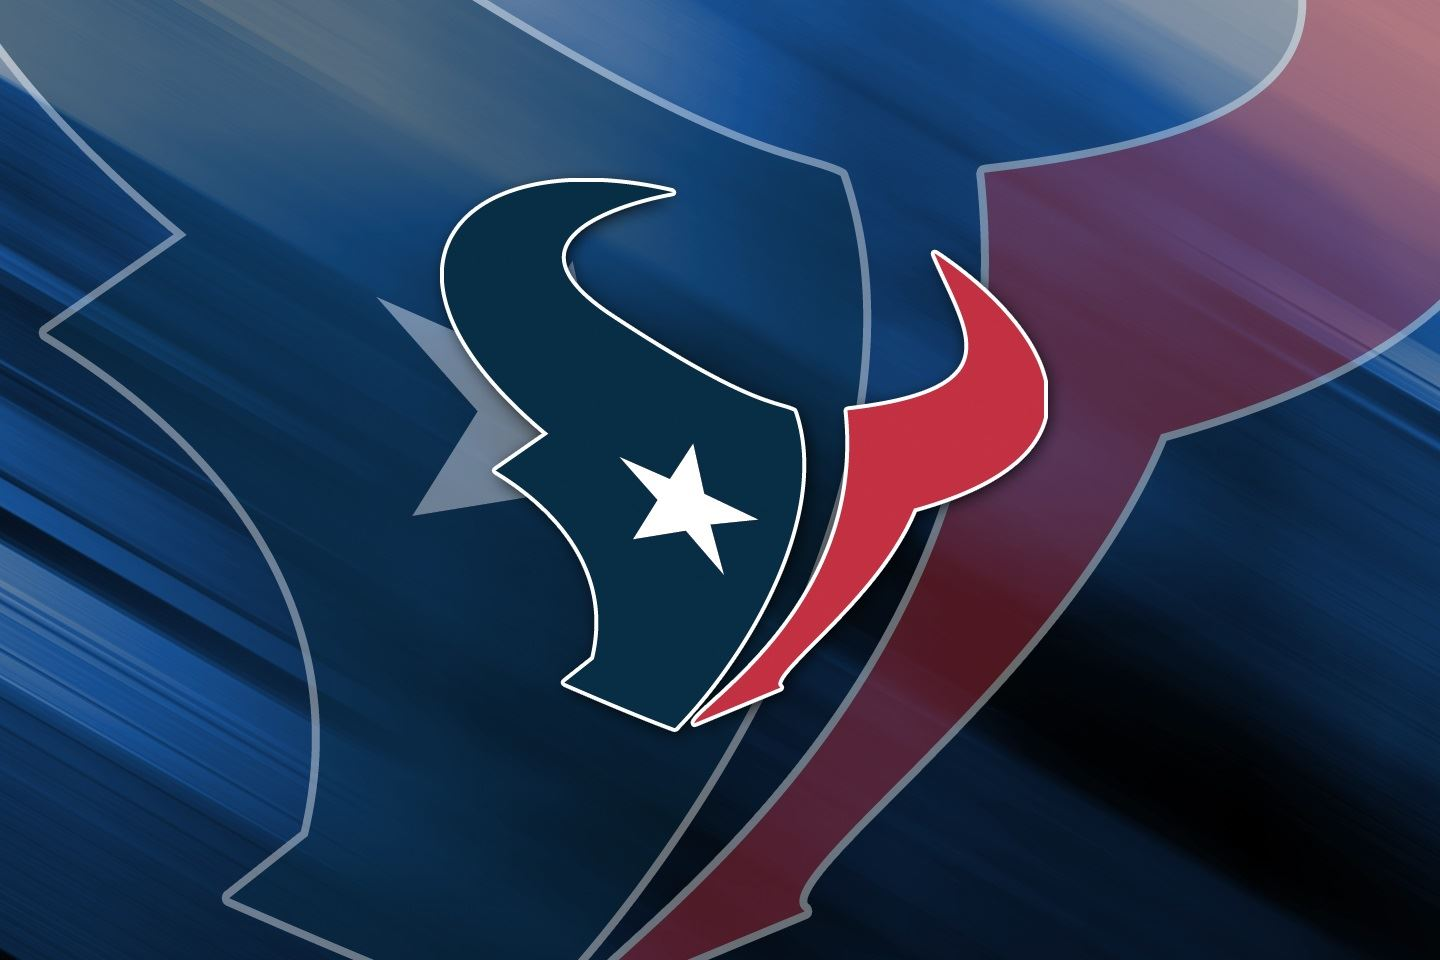 Russell Buhidar Youth Teams - Texans